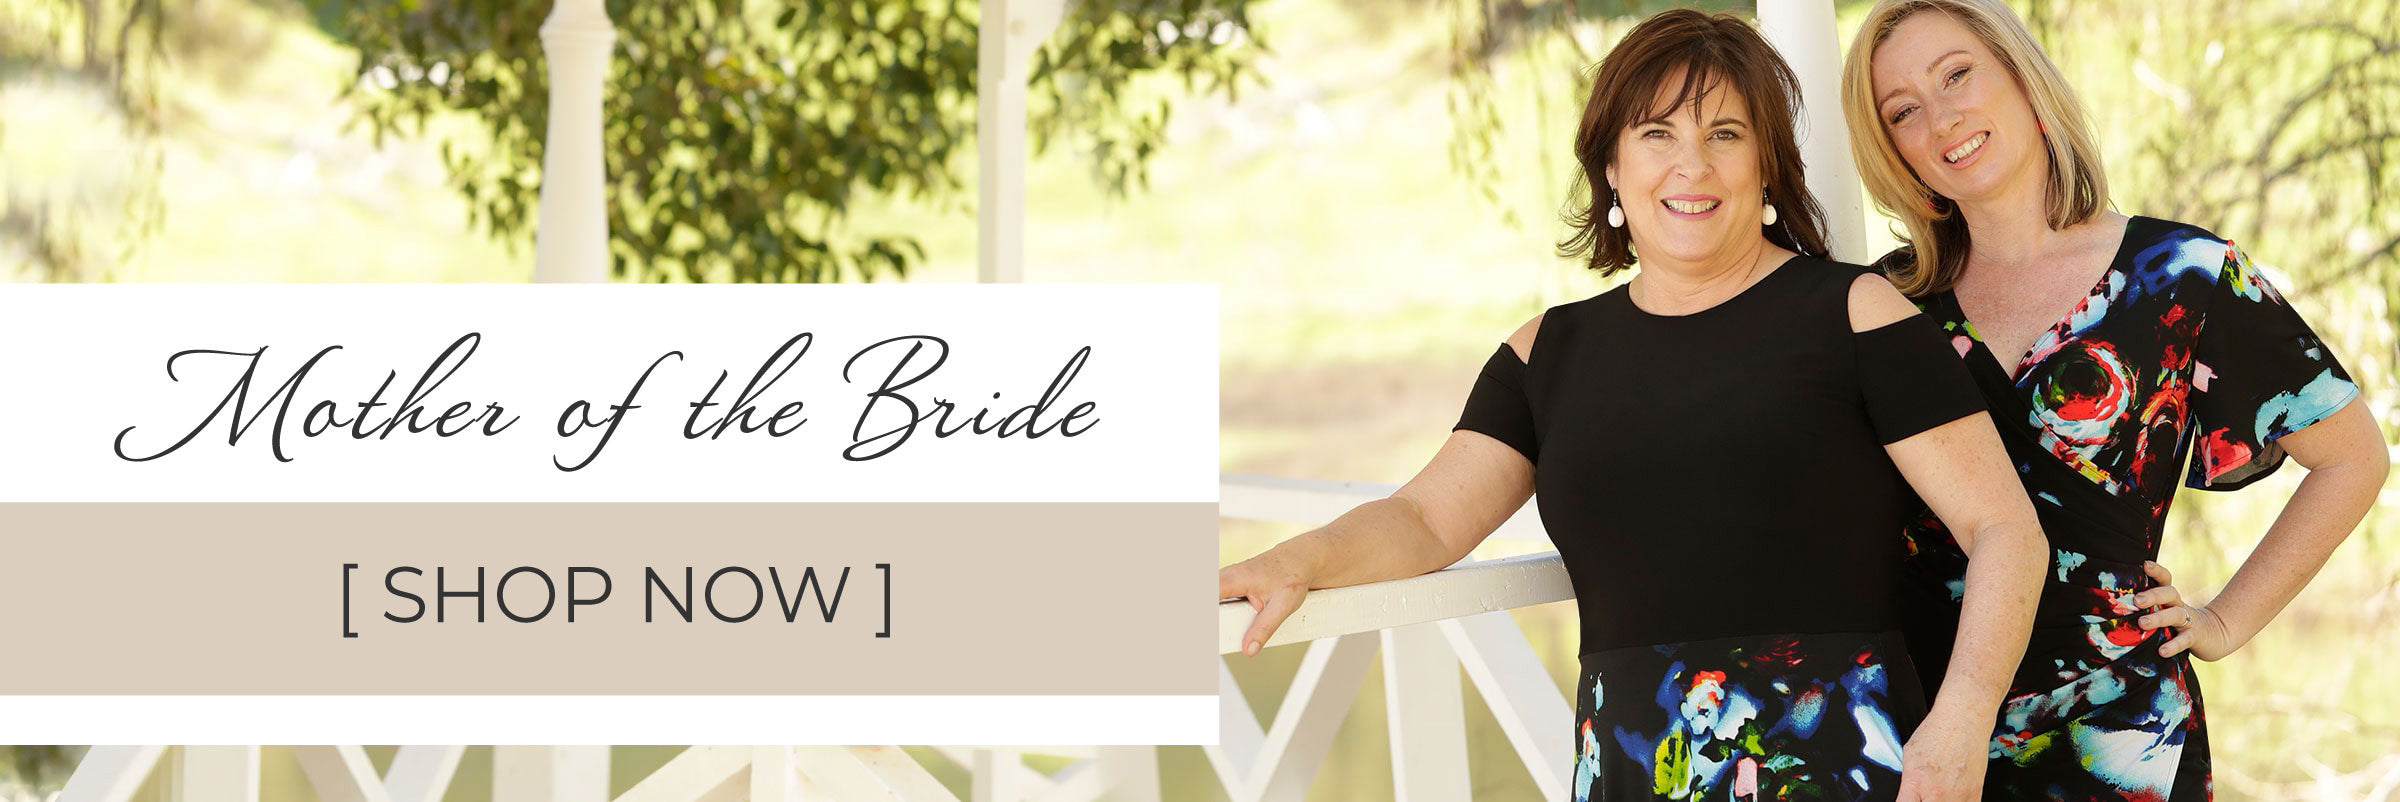 Shop Mother of the Bride outfits